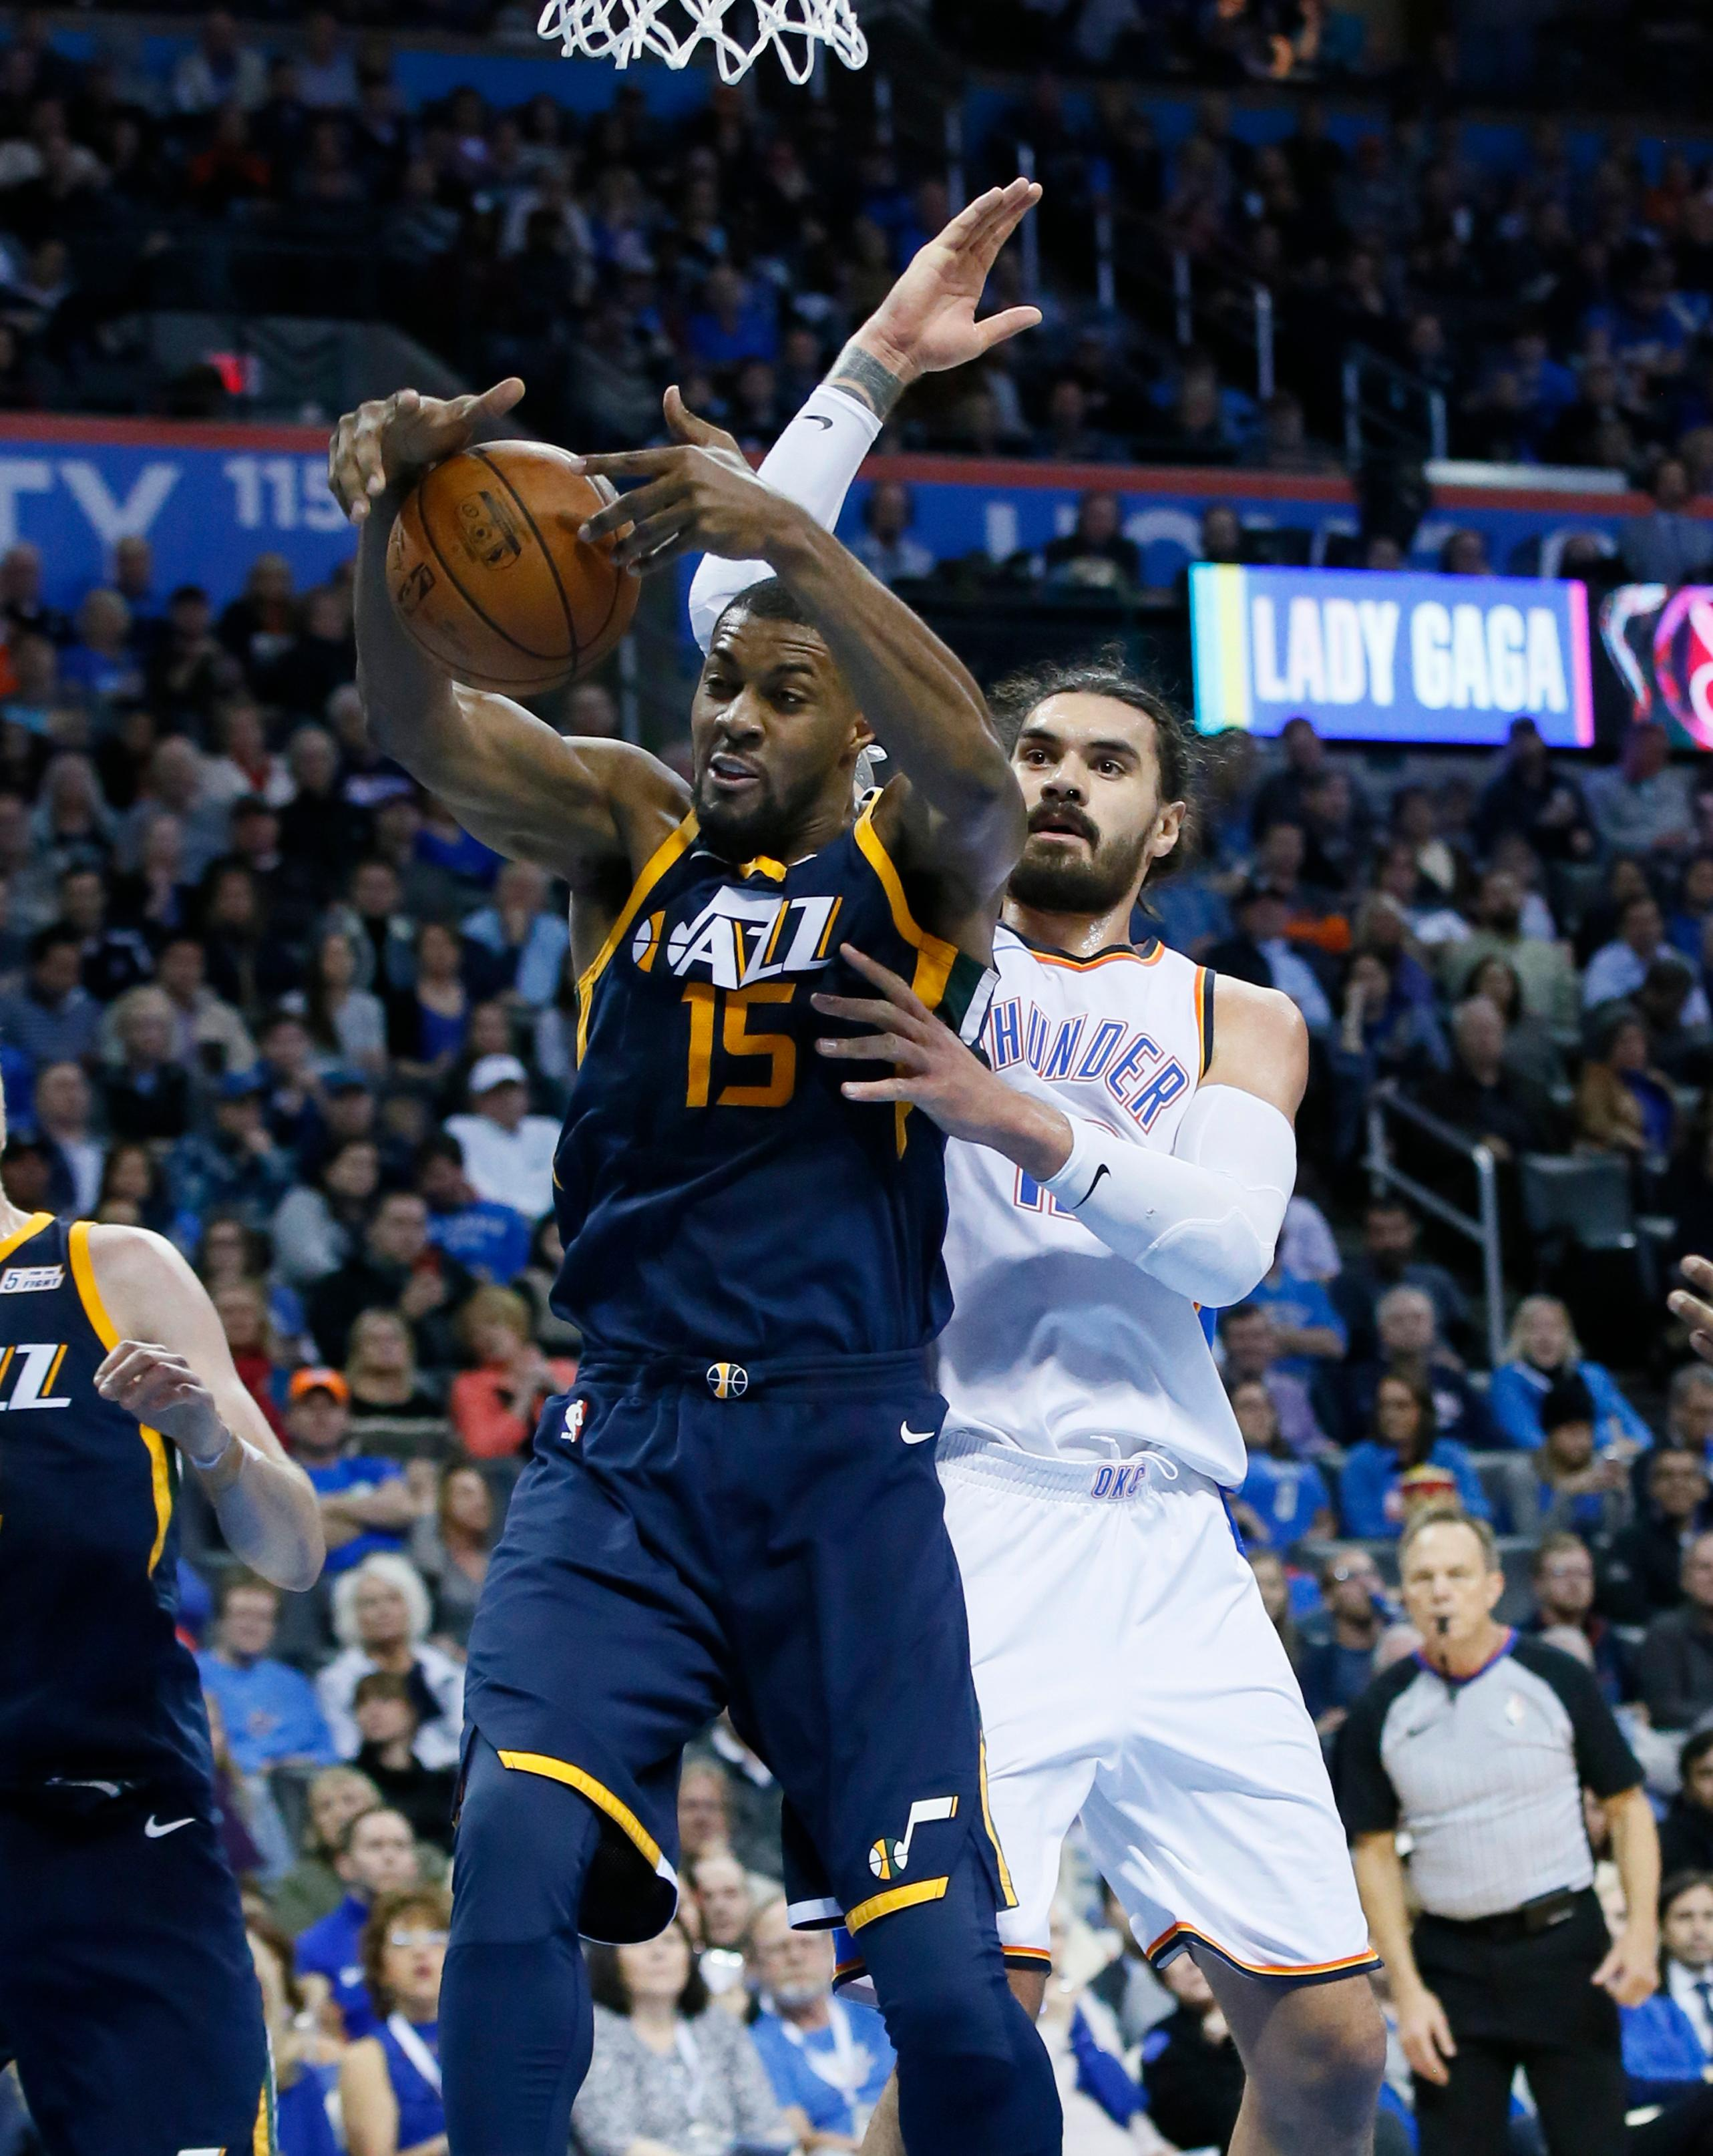 Utah Jazz forward Derrick Favors (15) grabs a rebound in front of Oklahoma City Thunder center Steven Adams, right, in the second quarter of an NBA basketball game in Oklahoma City, Tuesday, Dec. 5, 2017. (AP Photo/Sue Ogrocki)